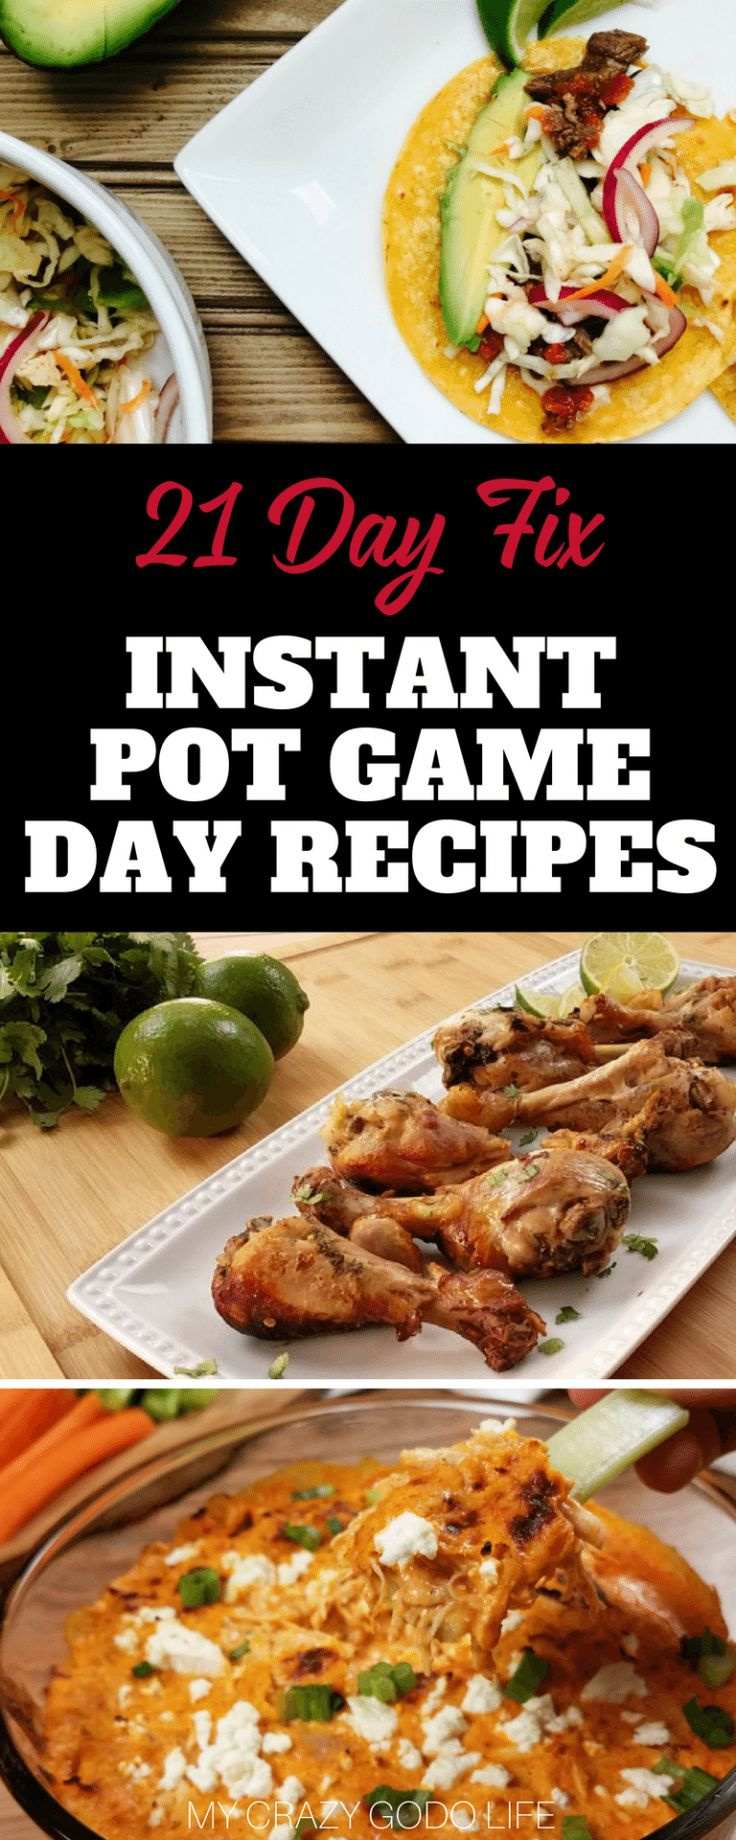 The big game day is coming! Do you have all of your recipes geared up and ready to go? Yeah, I wasn't quite ready yet either. I put together some great 21 Day Fix Instant Pot game day recipes to make it easier. #21dayfix #recipes #gameday #instantpot